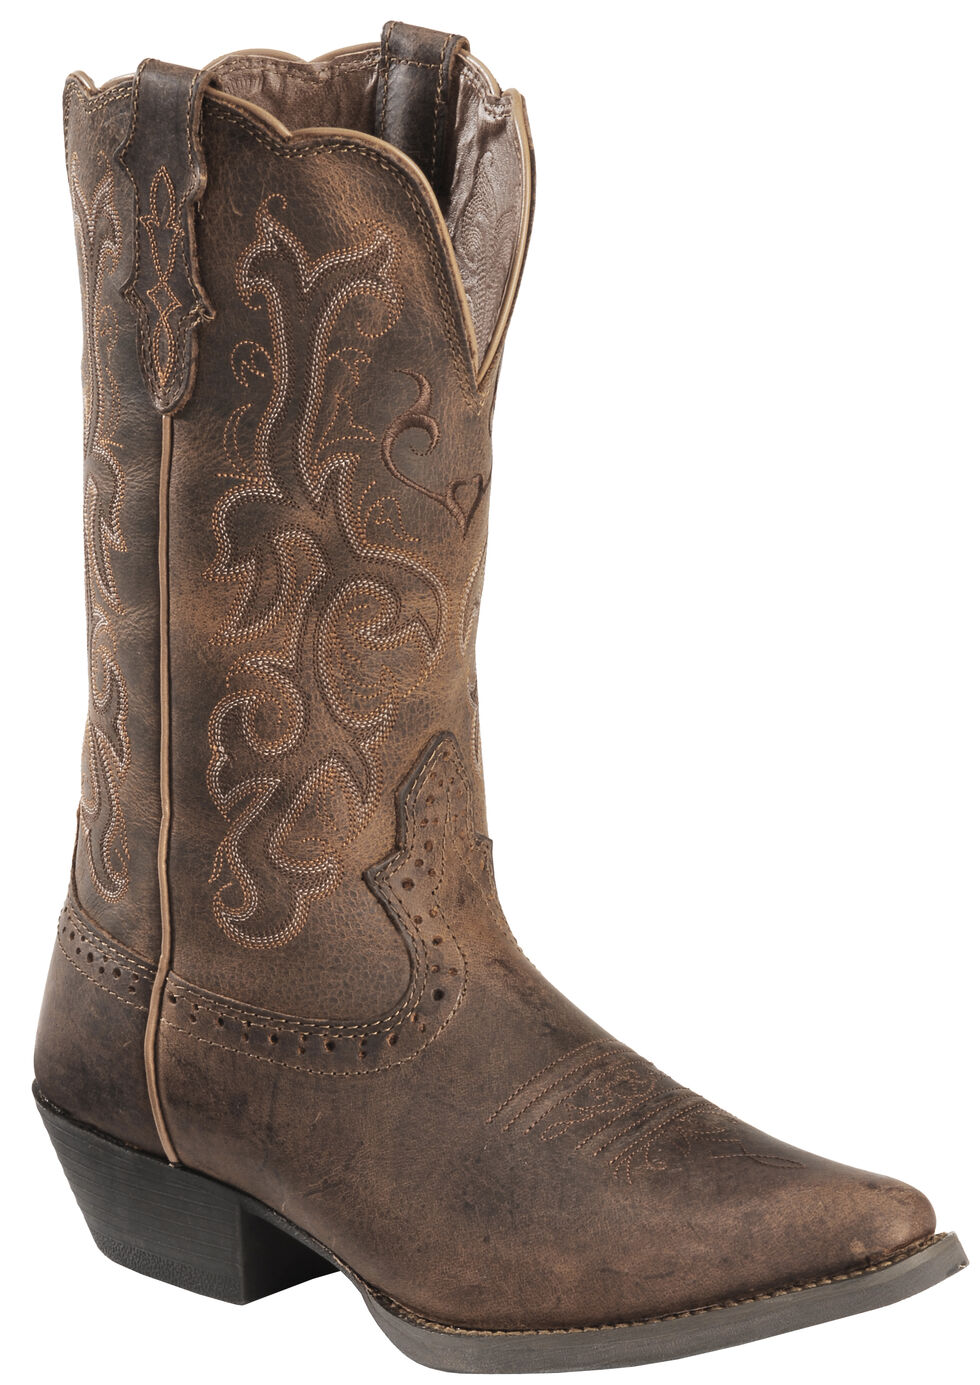 Justin Stampede Women's Mc Kayla Tan Cowgirl Boots   Snip Toe by Justin